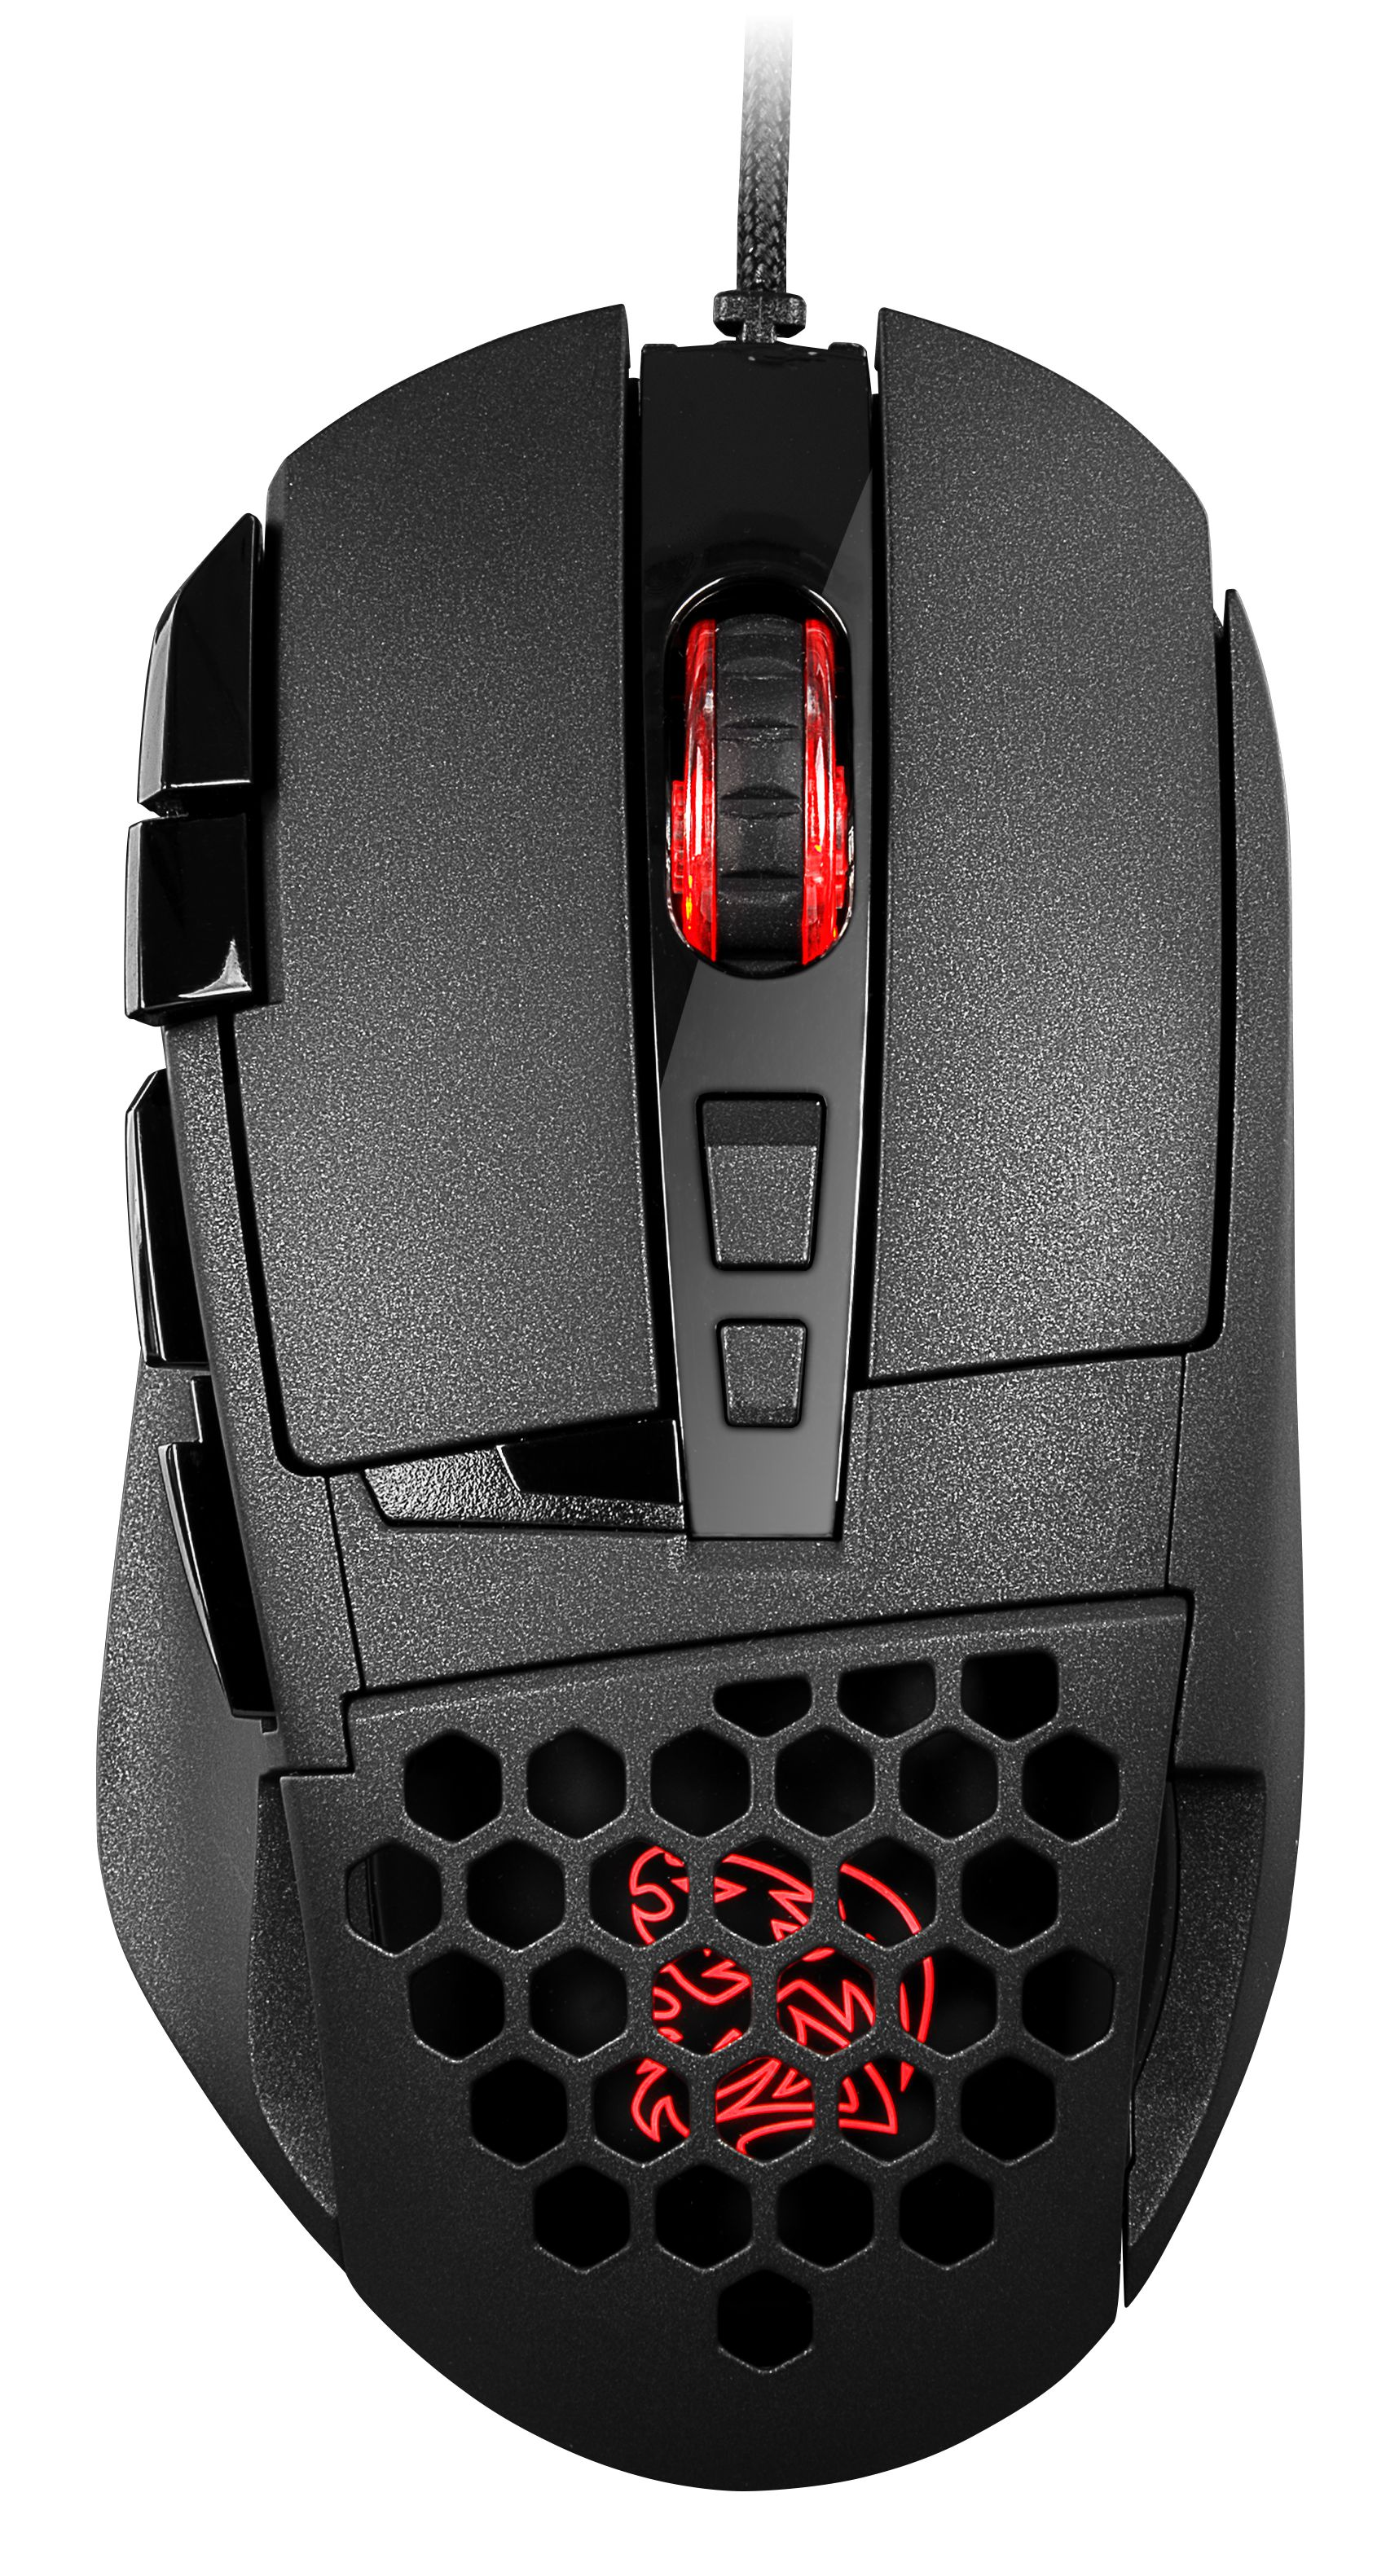 Taiwan Excellence Us Thermaltake Core P90 Tempered Glass Ventus X Rgb Optical Gaming Mouse